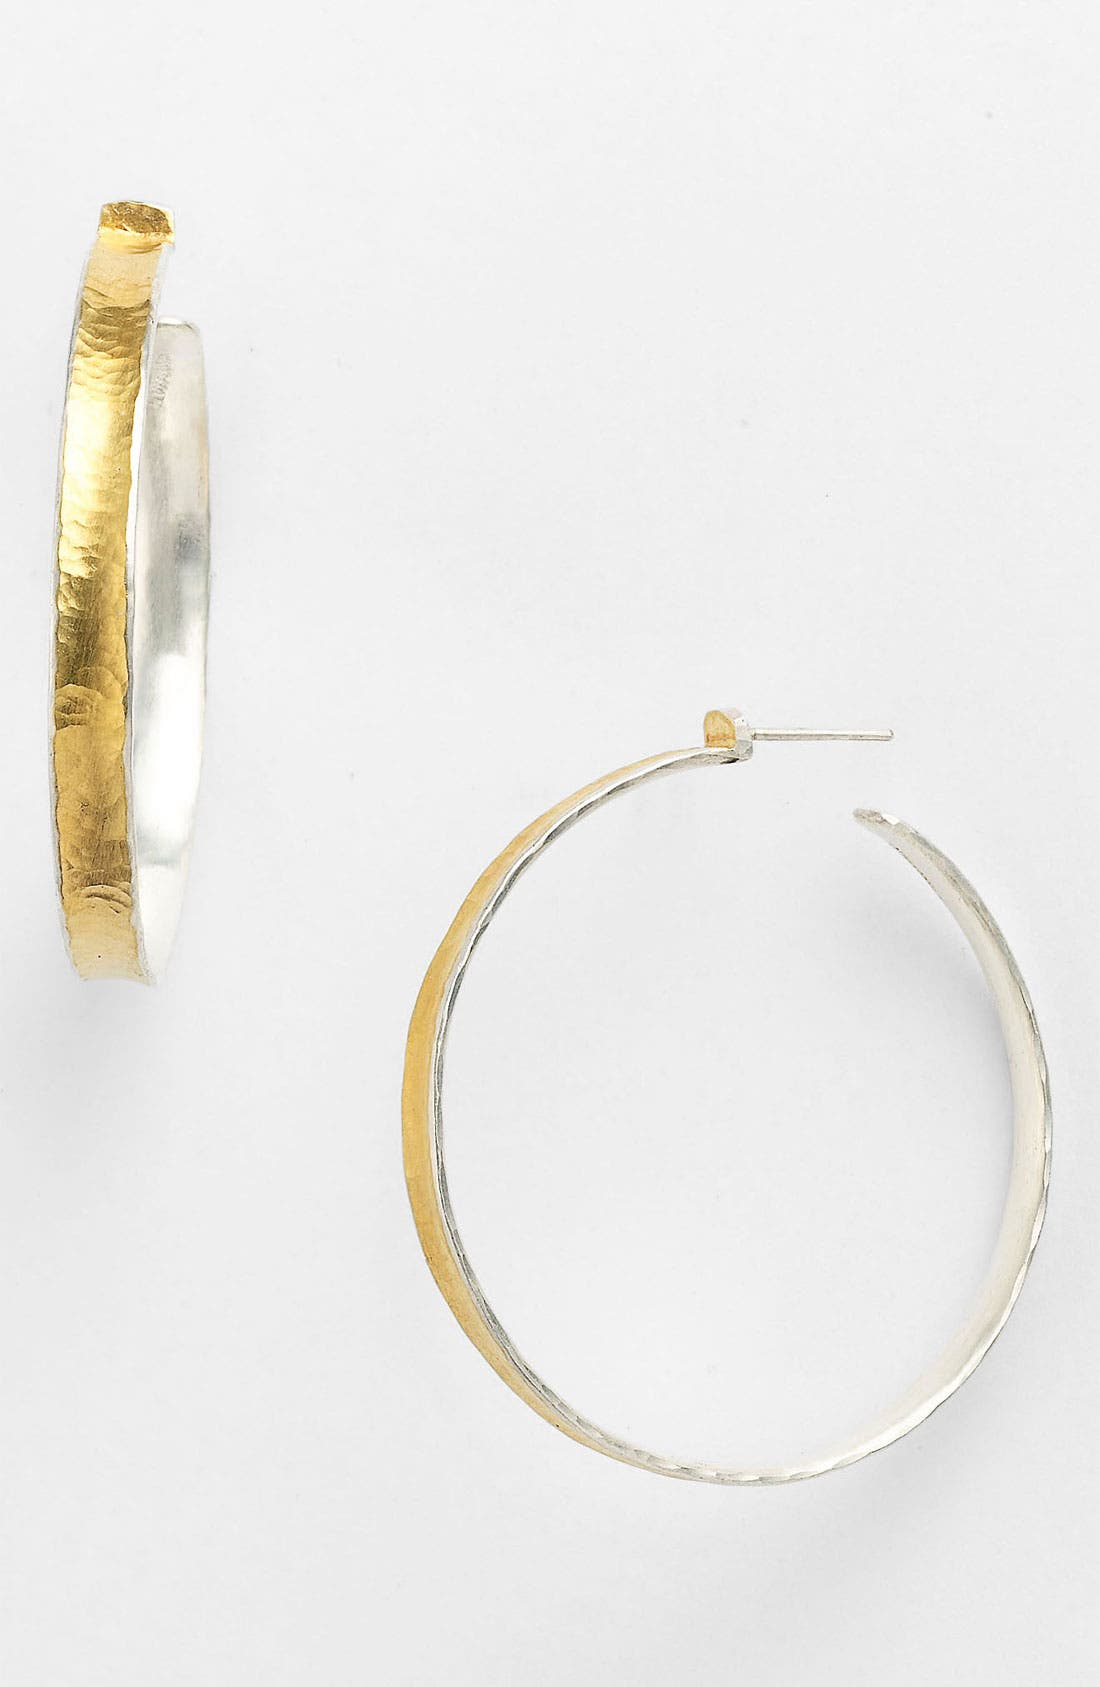 Alternate Image 1 Selected - Gurhan 'Hourglass' Hoop Earrings